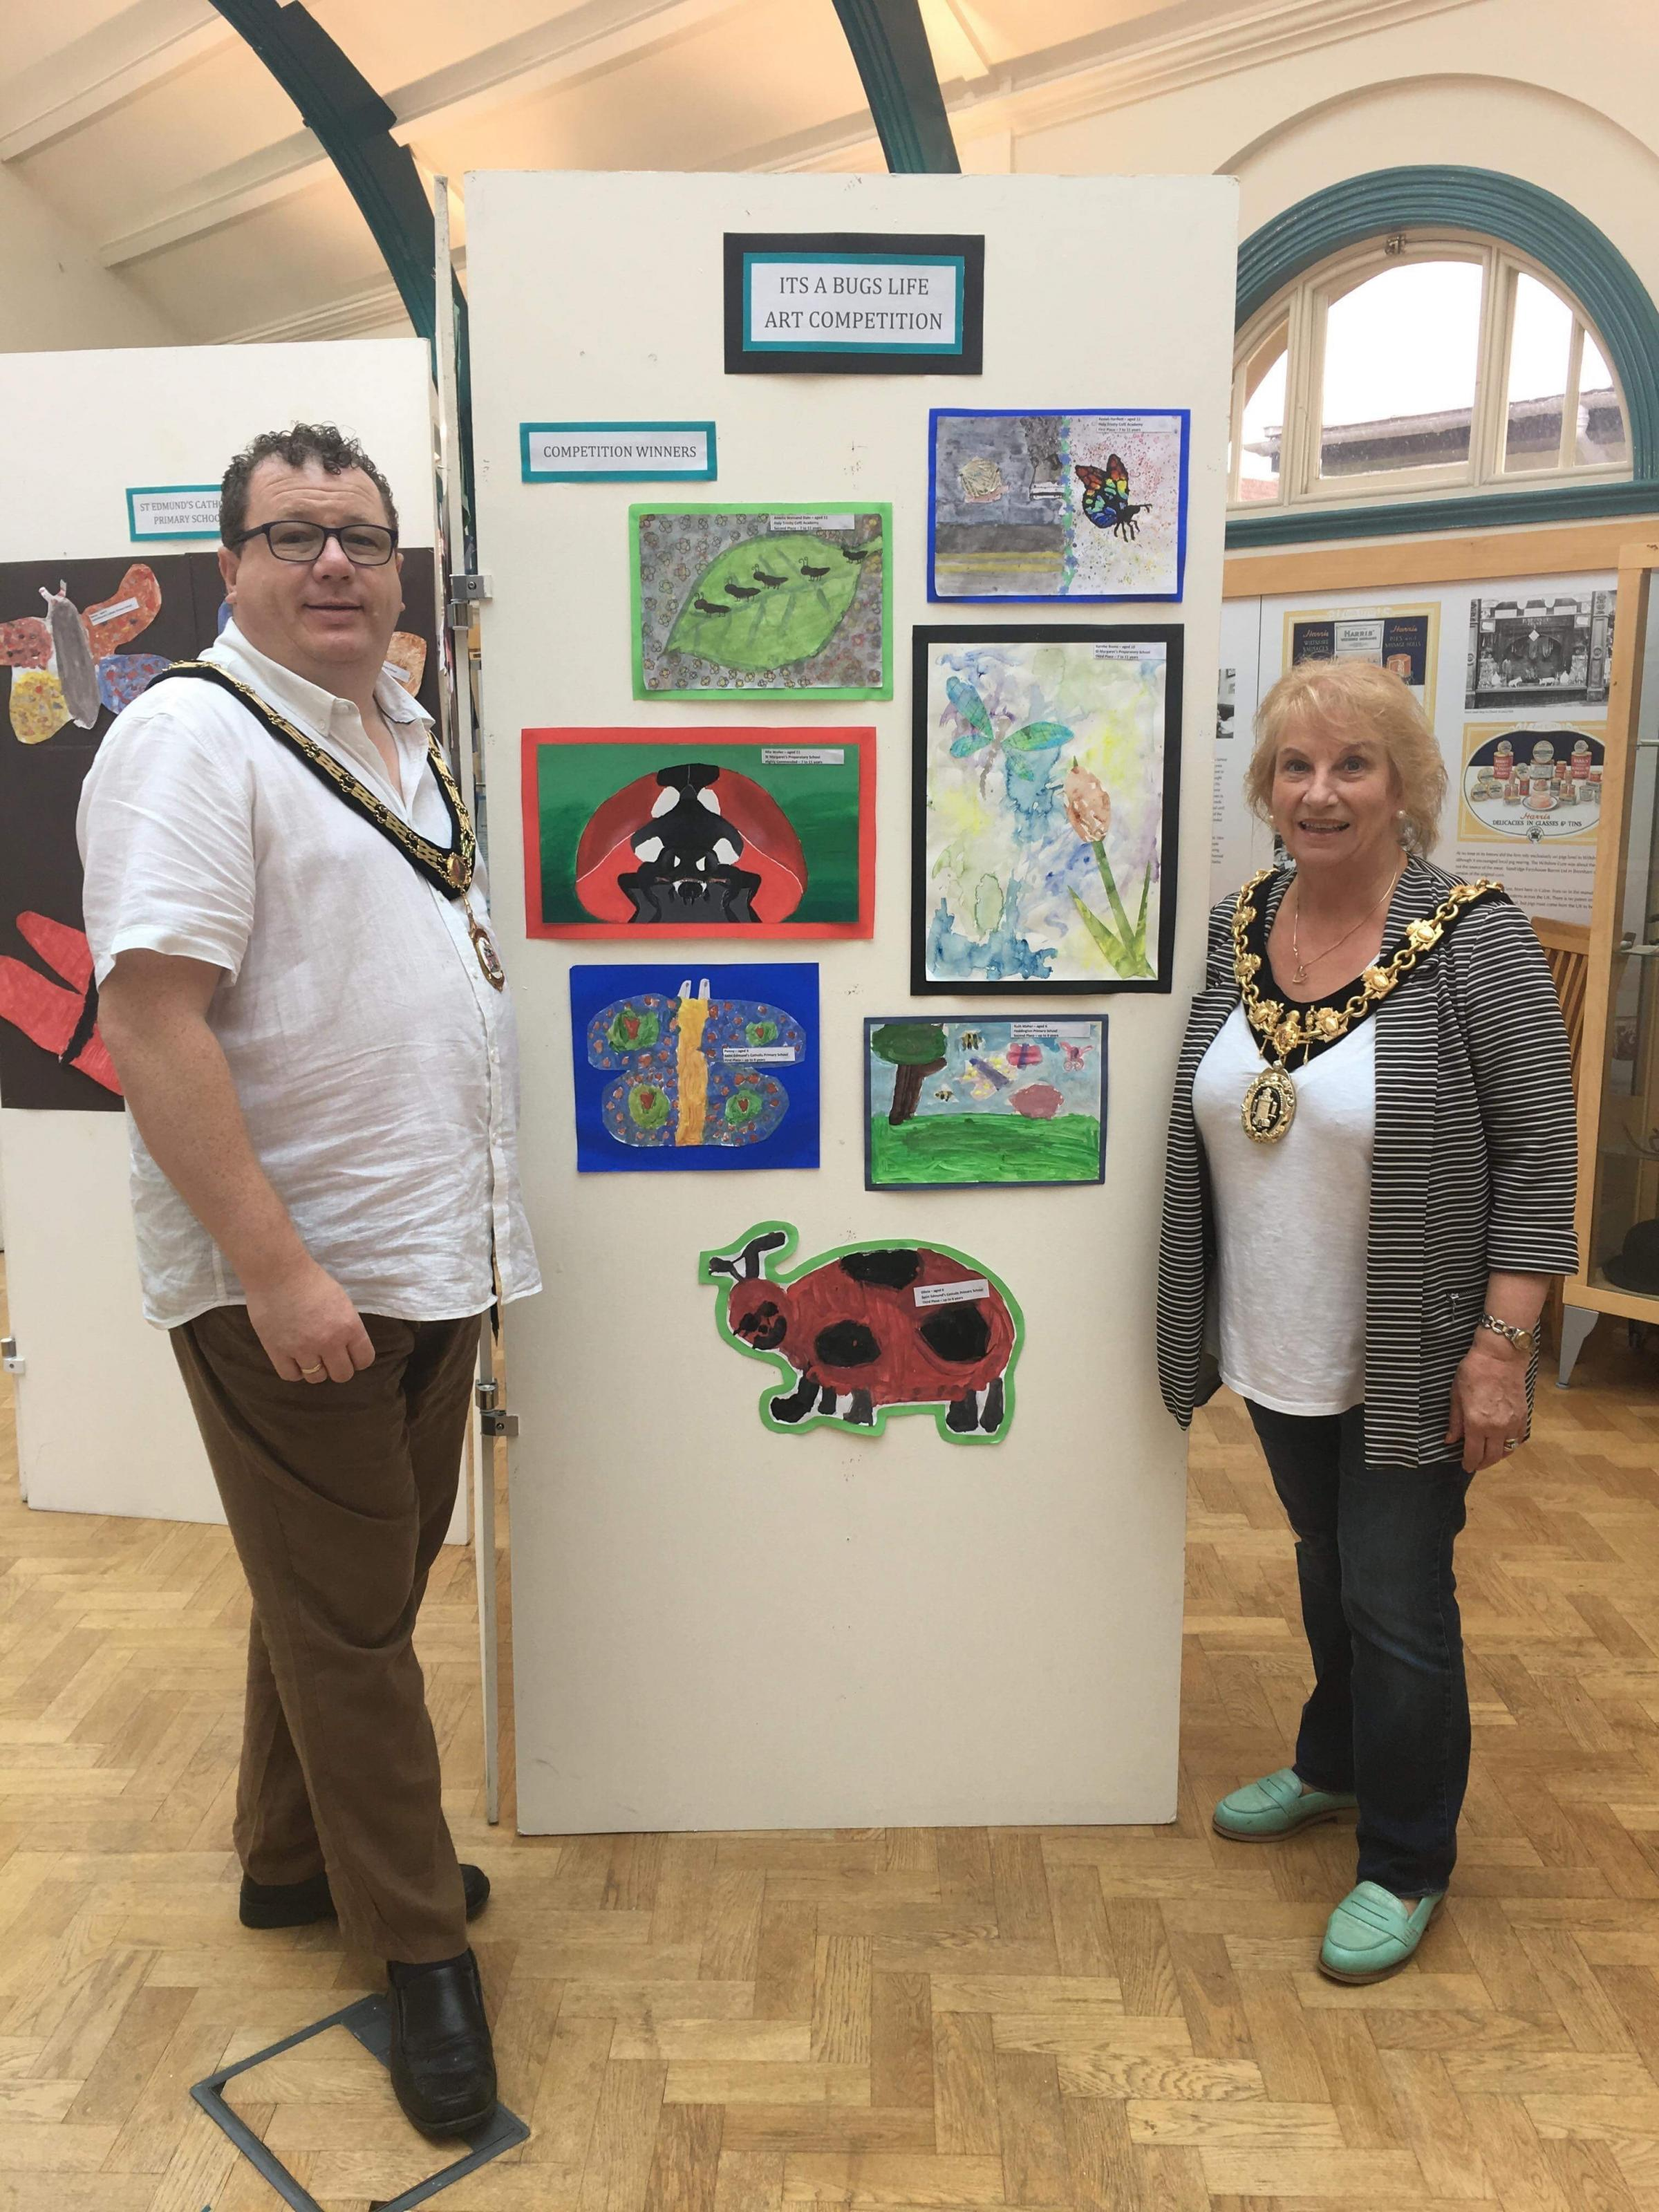 Calne Town Mayor Cllr Glenis Ansell and Deputy Mayor Cllr Robert Merrick judging the school's painting competition, part of the Britain in Bloom initiative.